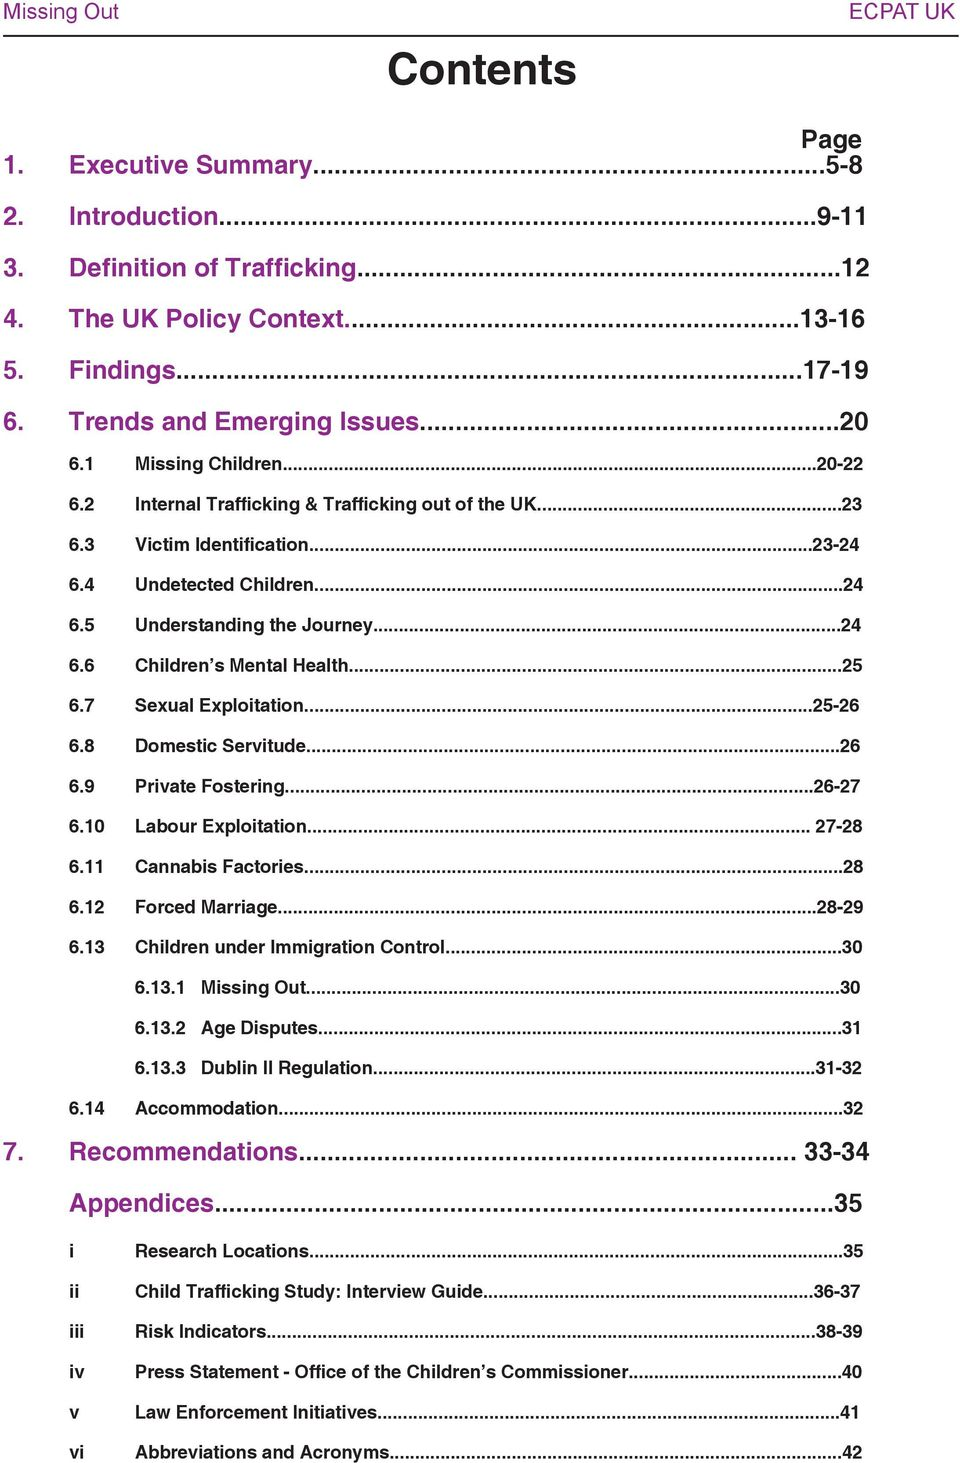 ..25 6.7 Sexual Exploitation...25-26 6.8 Domestic Servitude...26 6.9 Private Fostering...26-27 6.10 Labour Exploitation... 27-28 6.11 Cannabis Factories...28 6.12 Forced Marriage...28-29 6.